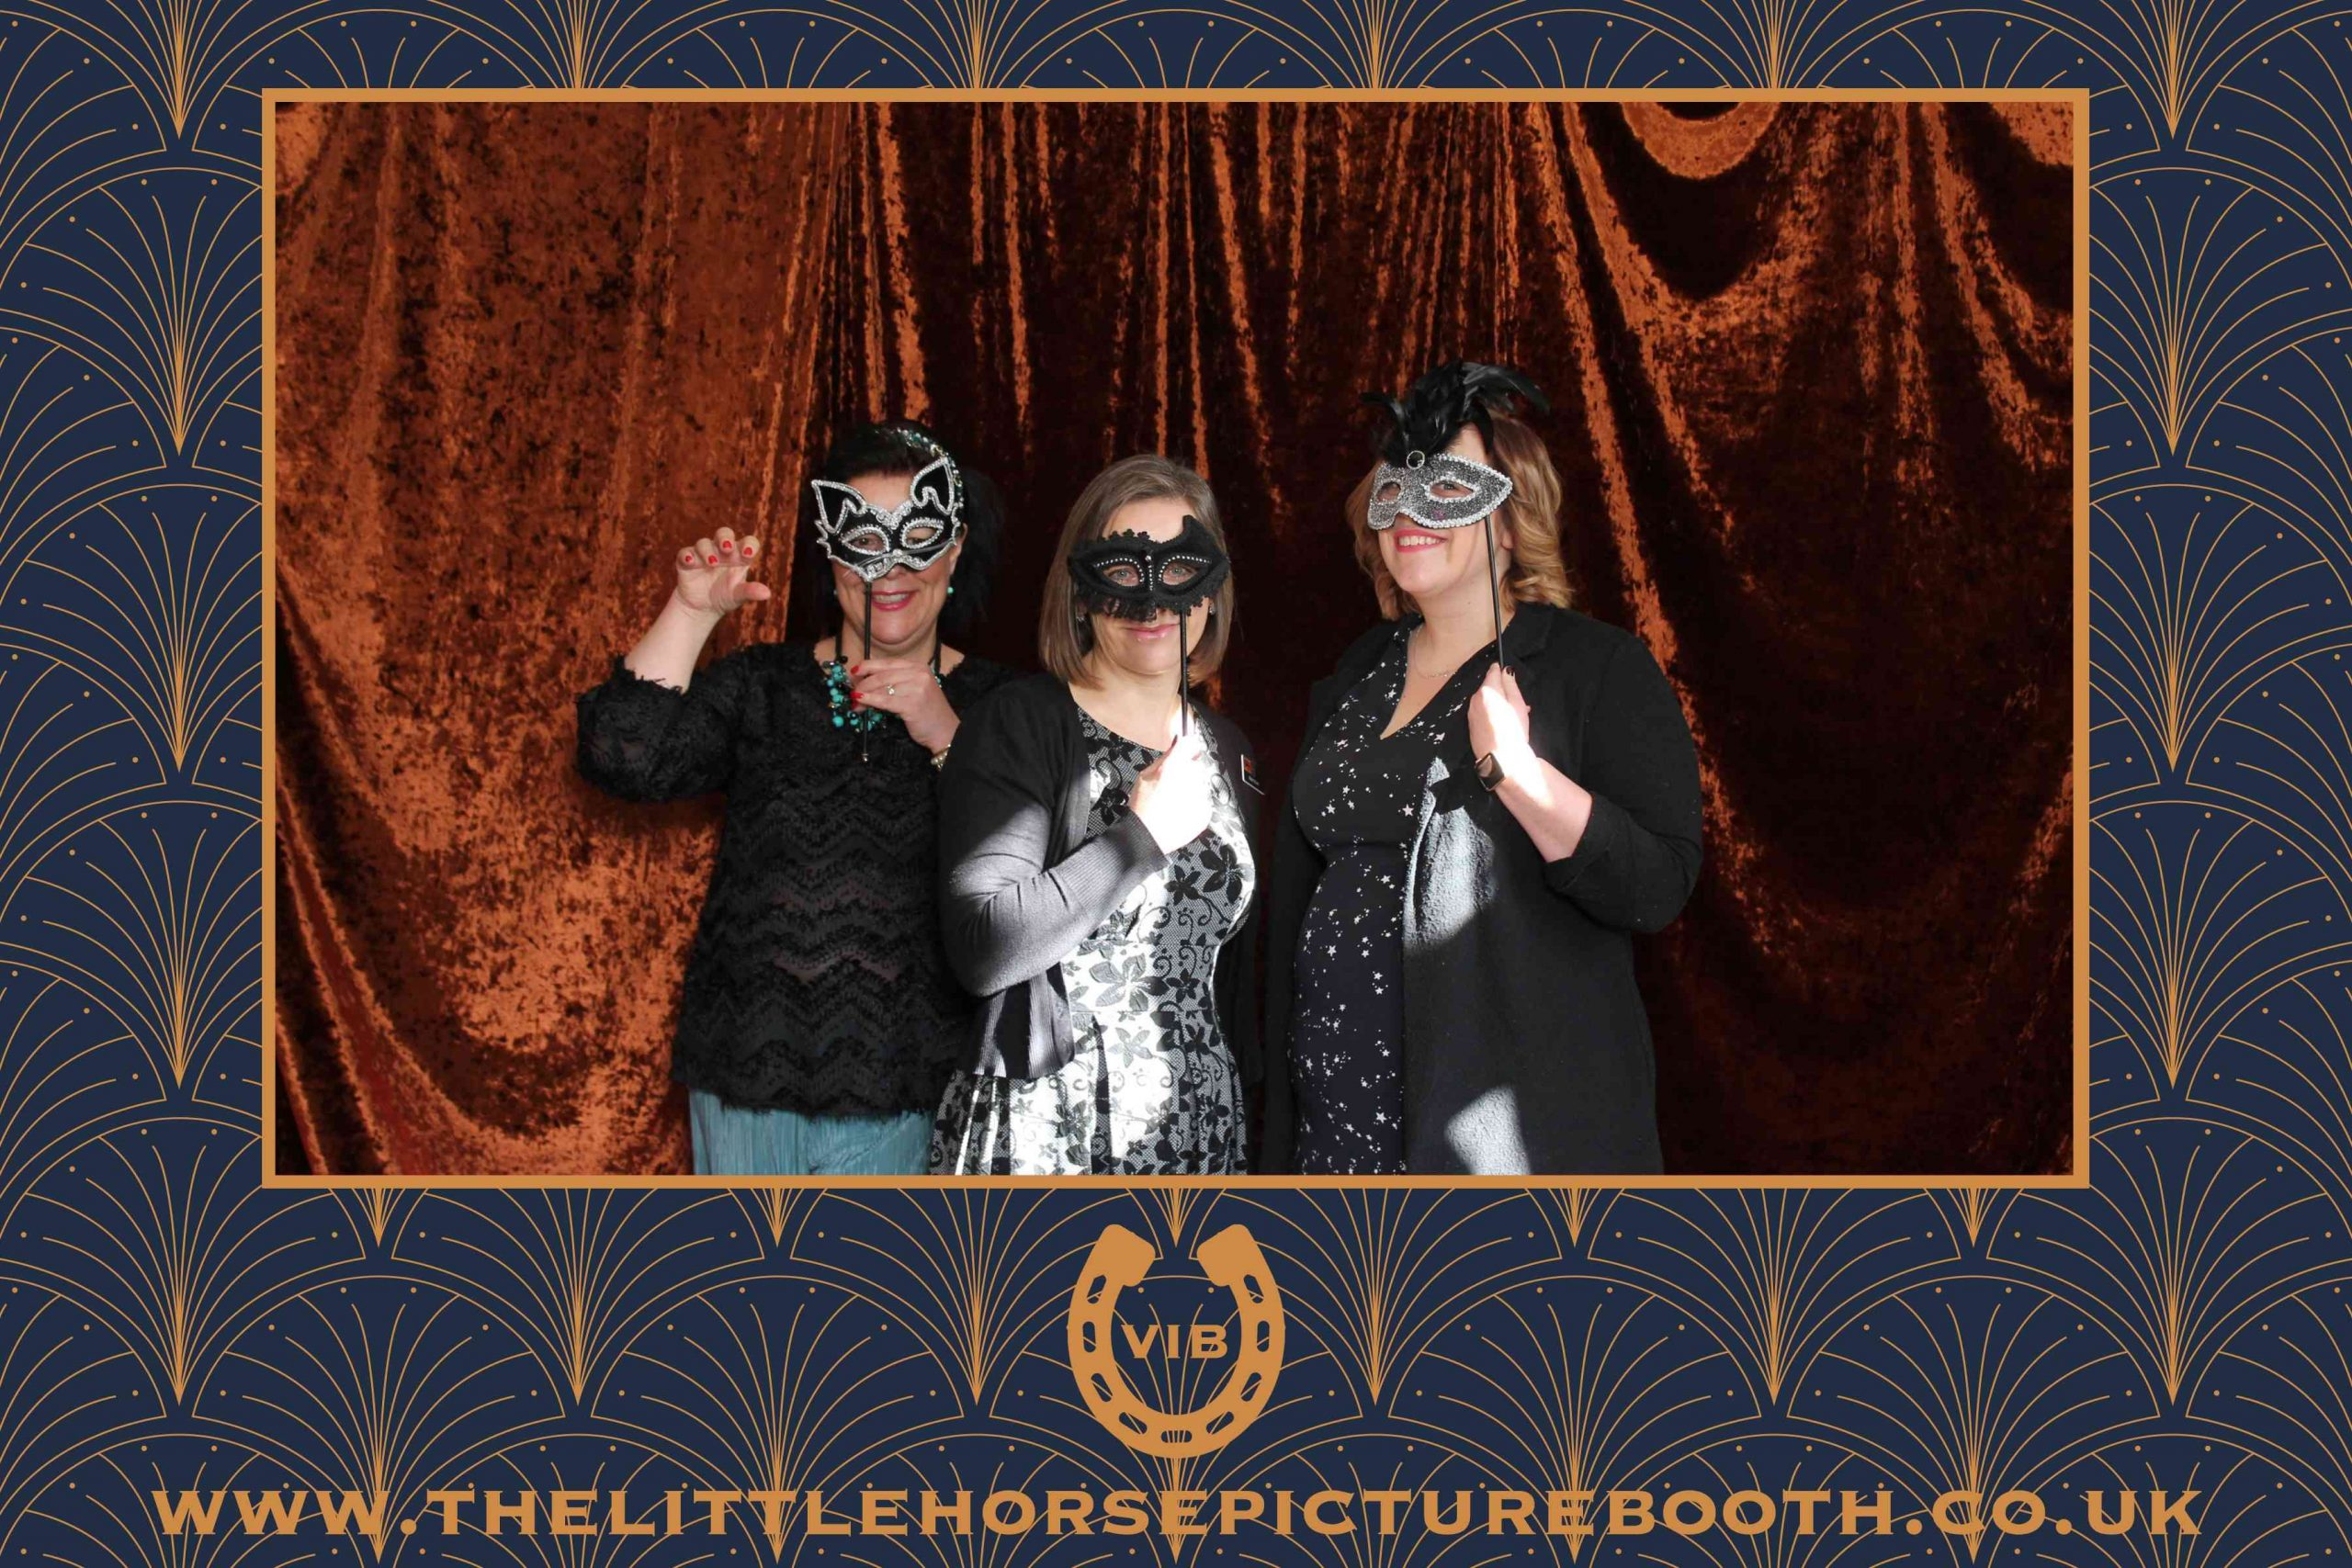 People wearing masquerade ball masks in photobooth